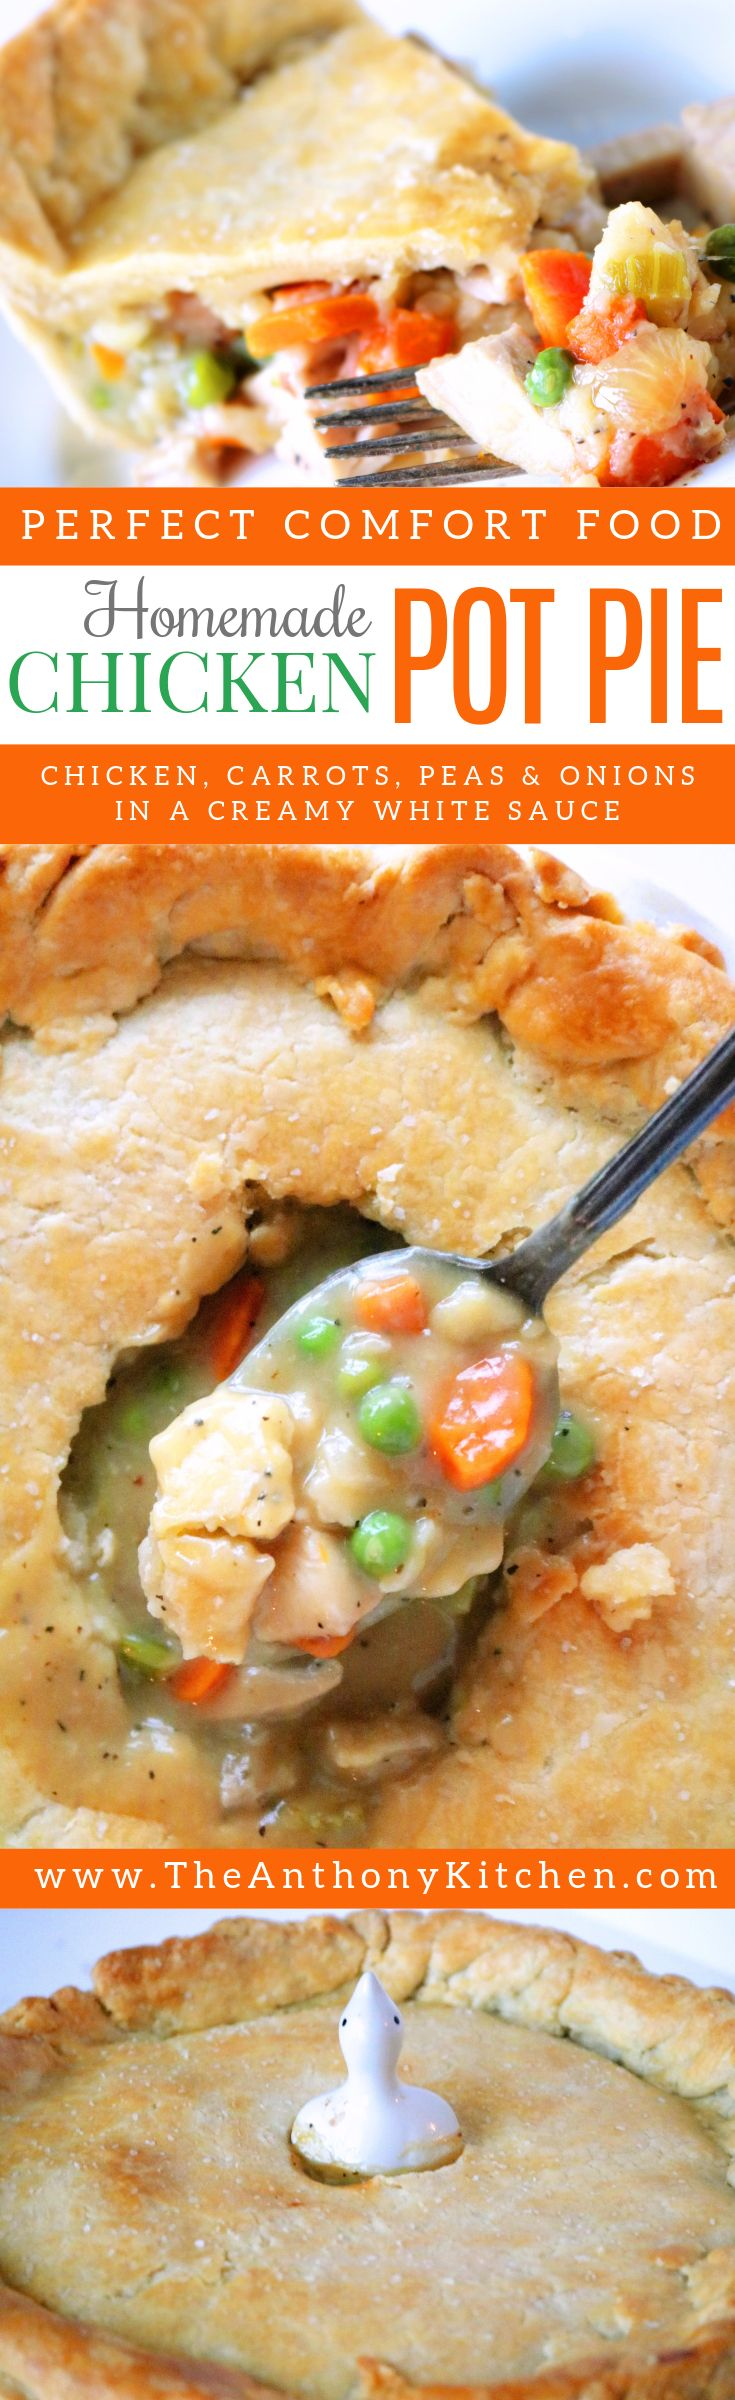 Best Chicken Pot Pie   How to make a perfectly cooked chicken pot pie with real ingredients and no cans!   #homemade #chickencasserolerecipe #chickendinnertimerecipe #chickenrecipe #casserolerecipes #chickenpotpie